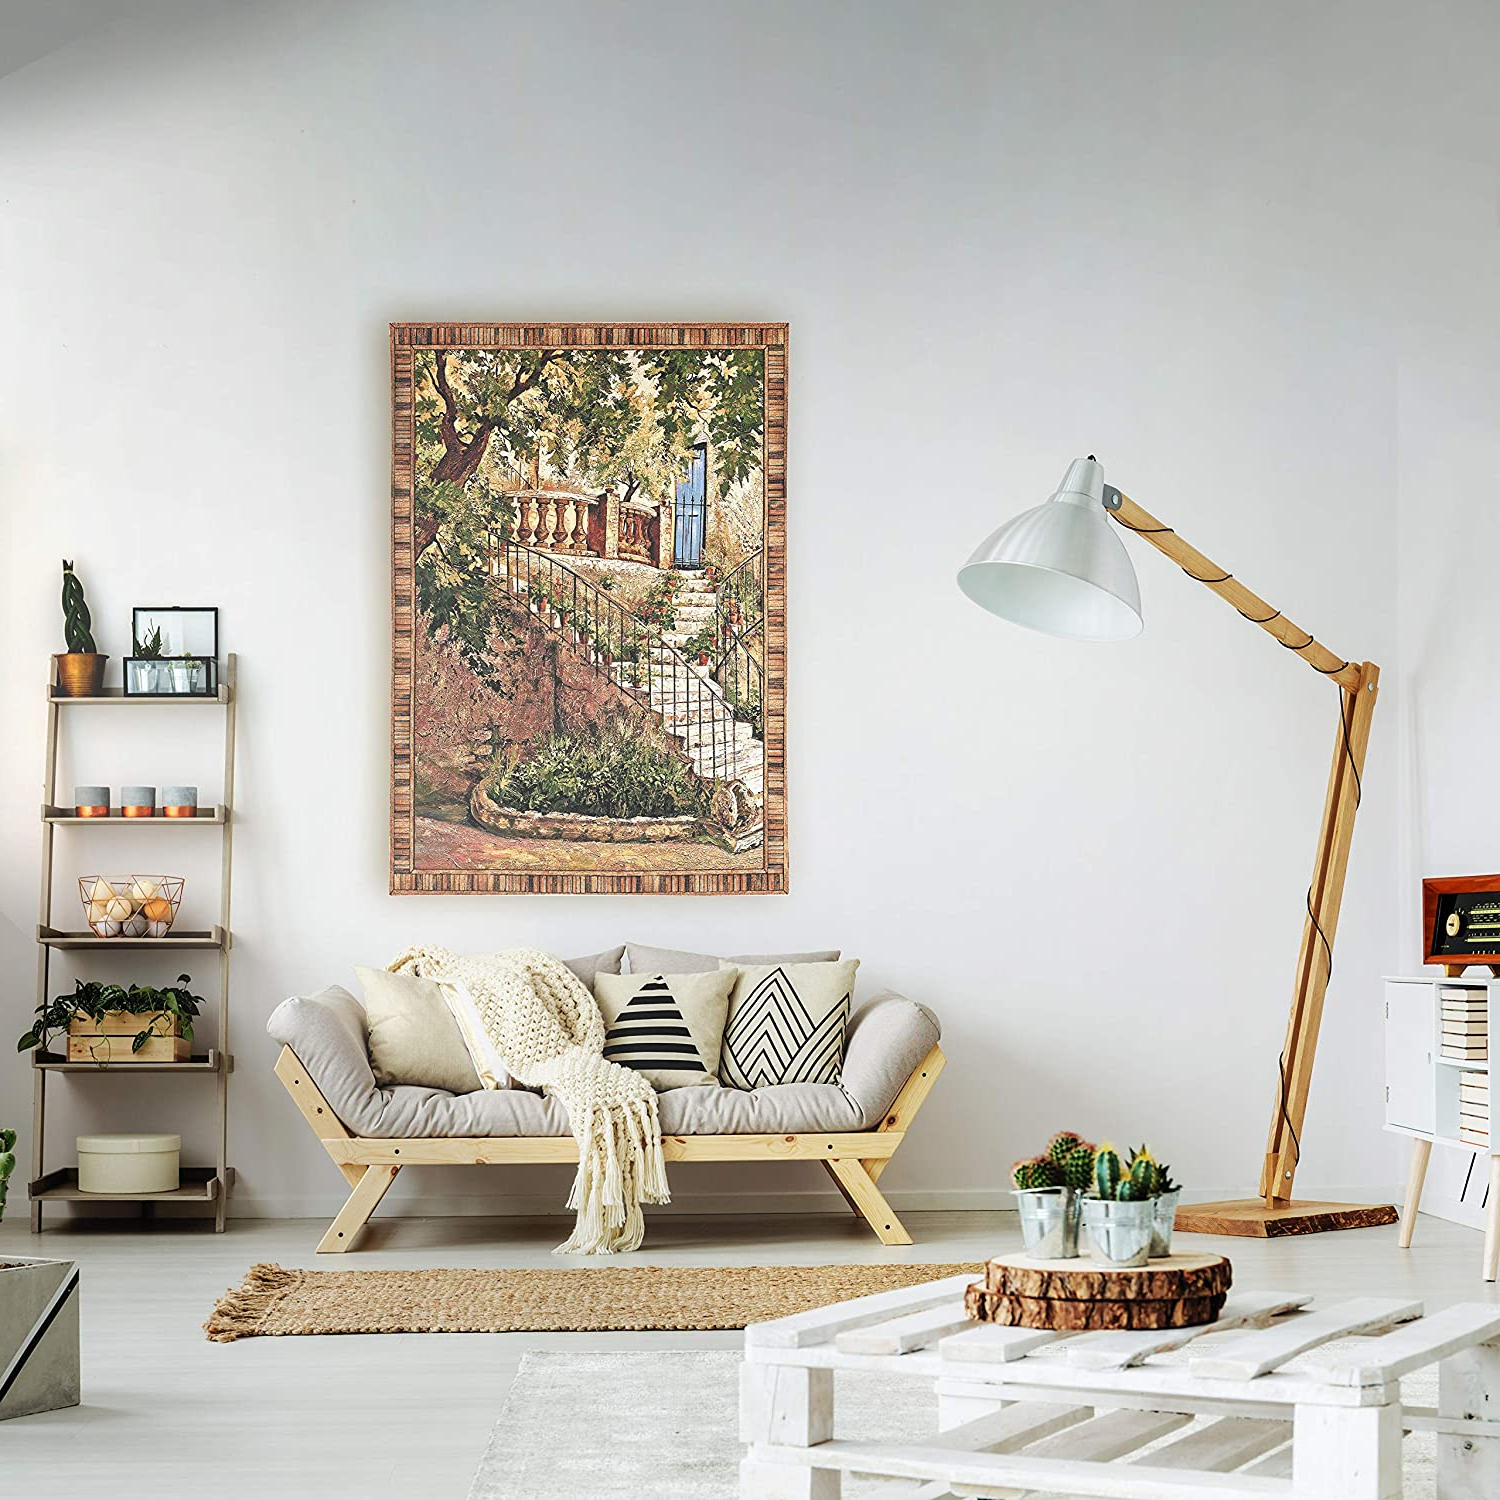 [%tuscan Villa Iroger Duvall | Woven Tapestry Wall Art Hanging | Rustic Italian Steps With Foliage | 100% Cotton Usa Size 53x40 Intended For Widely Used Blended Fabric Bellagio Scalinata Wall Hangings|blended Fabric Bellagio Scalinata Wall Hangings Regarding Trendy Tuscan Villa Iroger Duvall | Woven Tapestry Wall Art Hanging | Rustic Italian Steps With Foliage | 100% Cotton Usa Size 53x40|trendy Blended Fabric Bellagio Scalinata Wall Hangings Regarding Tuscan Villa Iroger Duvall | Woven Tapestry Wall Art Hanging | Rustic Italian Steps With Foliage | 100% Cotton Usa Size 53x40|popular Tuscan Villa Iroger Duvall | Woven Tapestry Wall Art Hanging | Rustic Italian Steps With Foliage | 100% Cotton Usa Size 53x40 For Blended Fabric Bellagio Scalinata Wall Hangings%] (View 17 of 20)